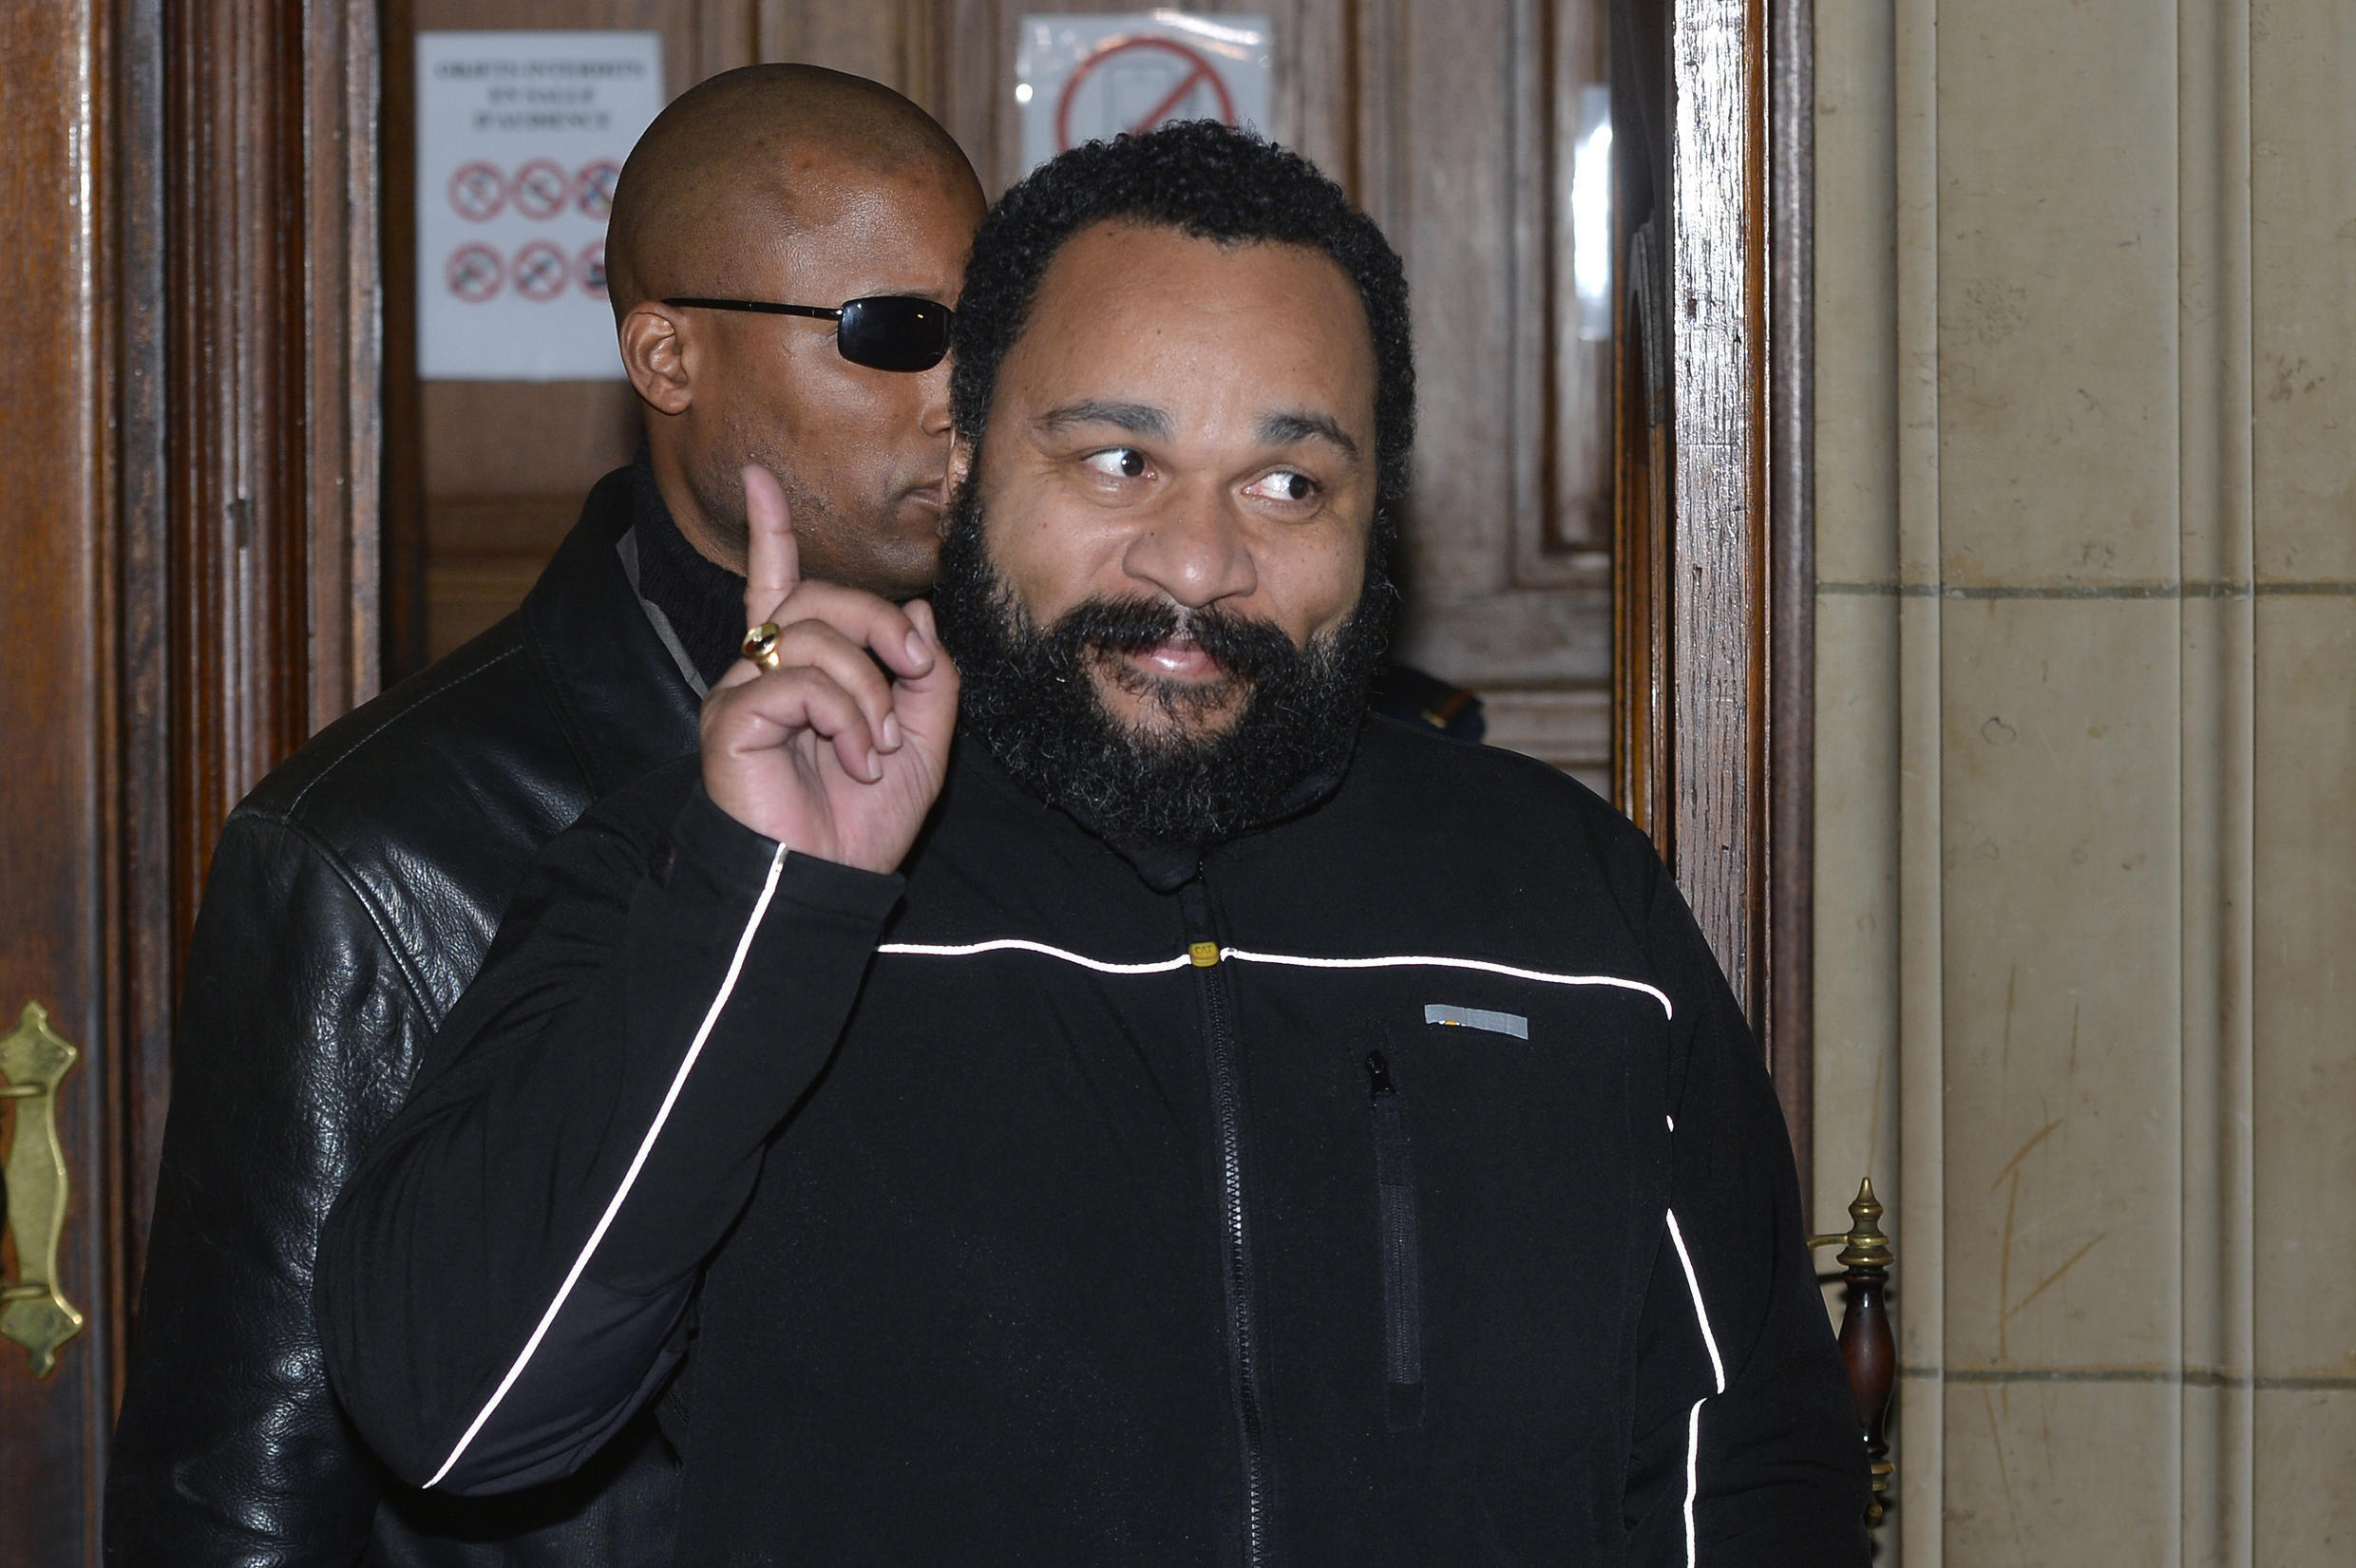 The contract for Dieudonné's show in Avignon has been cancelled by the venue's manager.